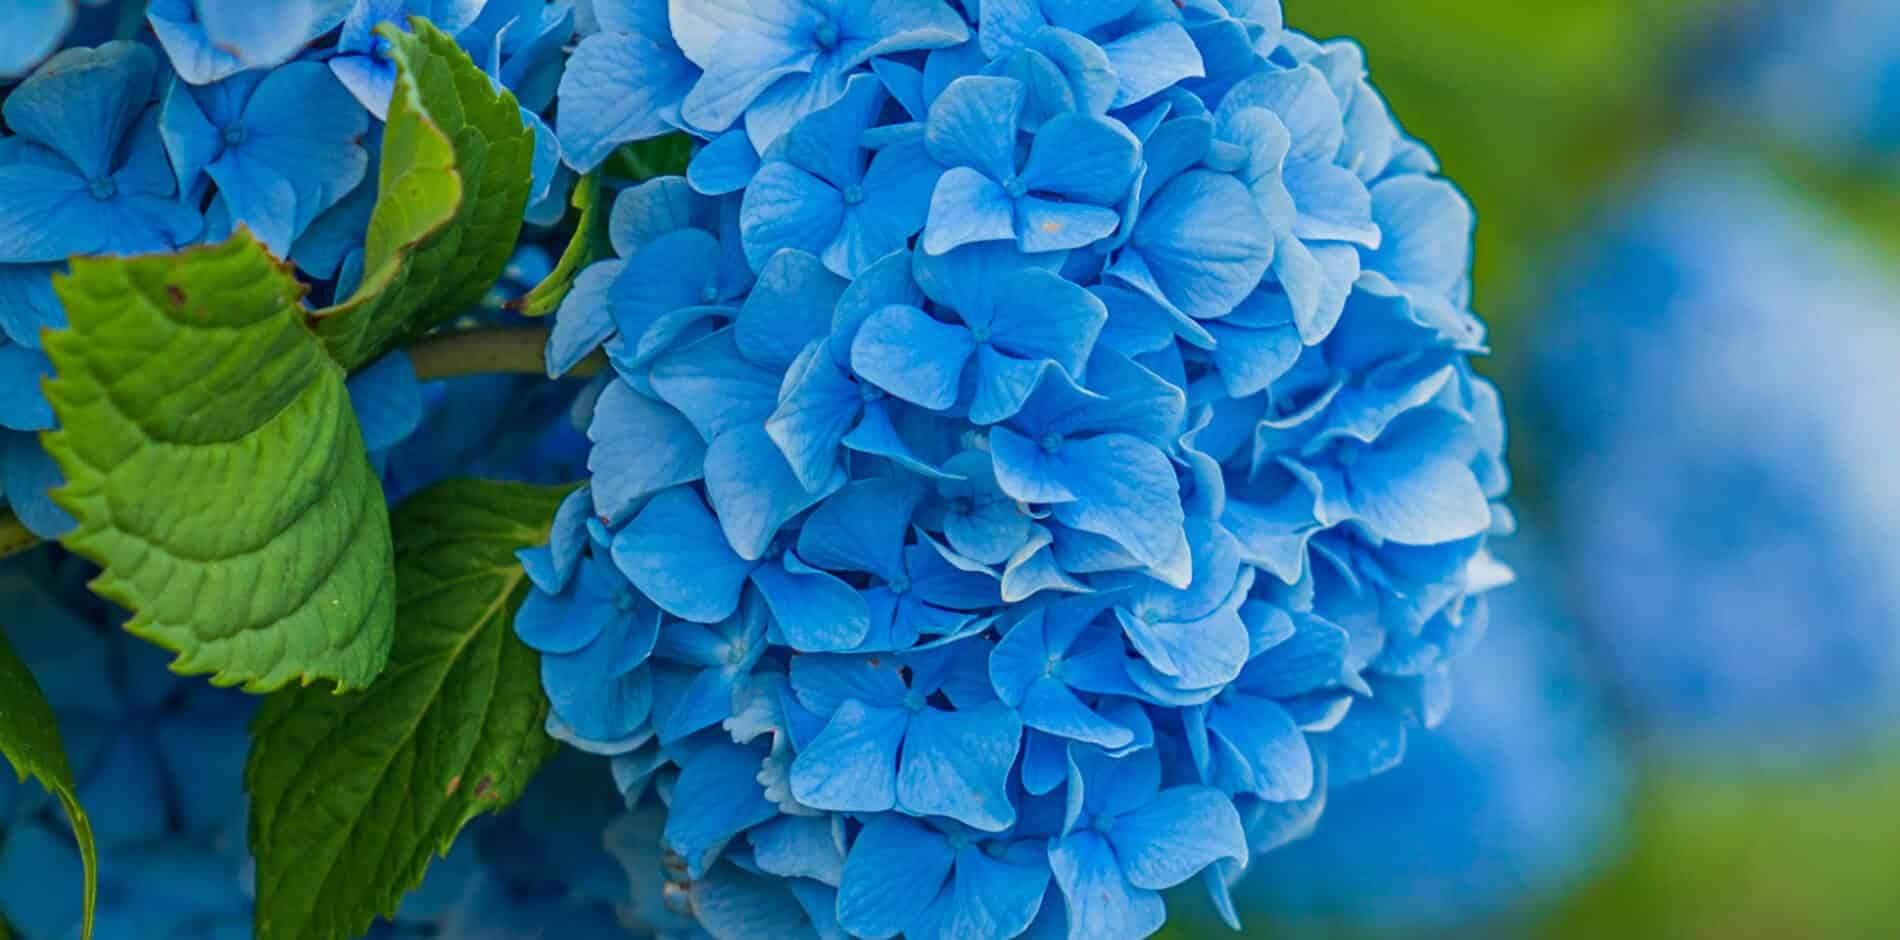 Close-up view of bright blue hydrangea flower surrounded by green leaves